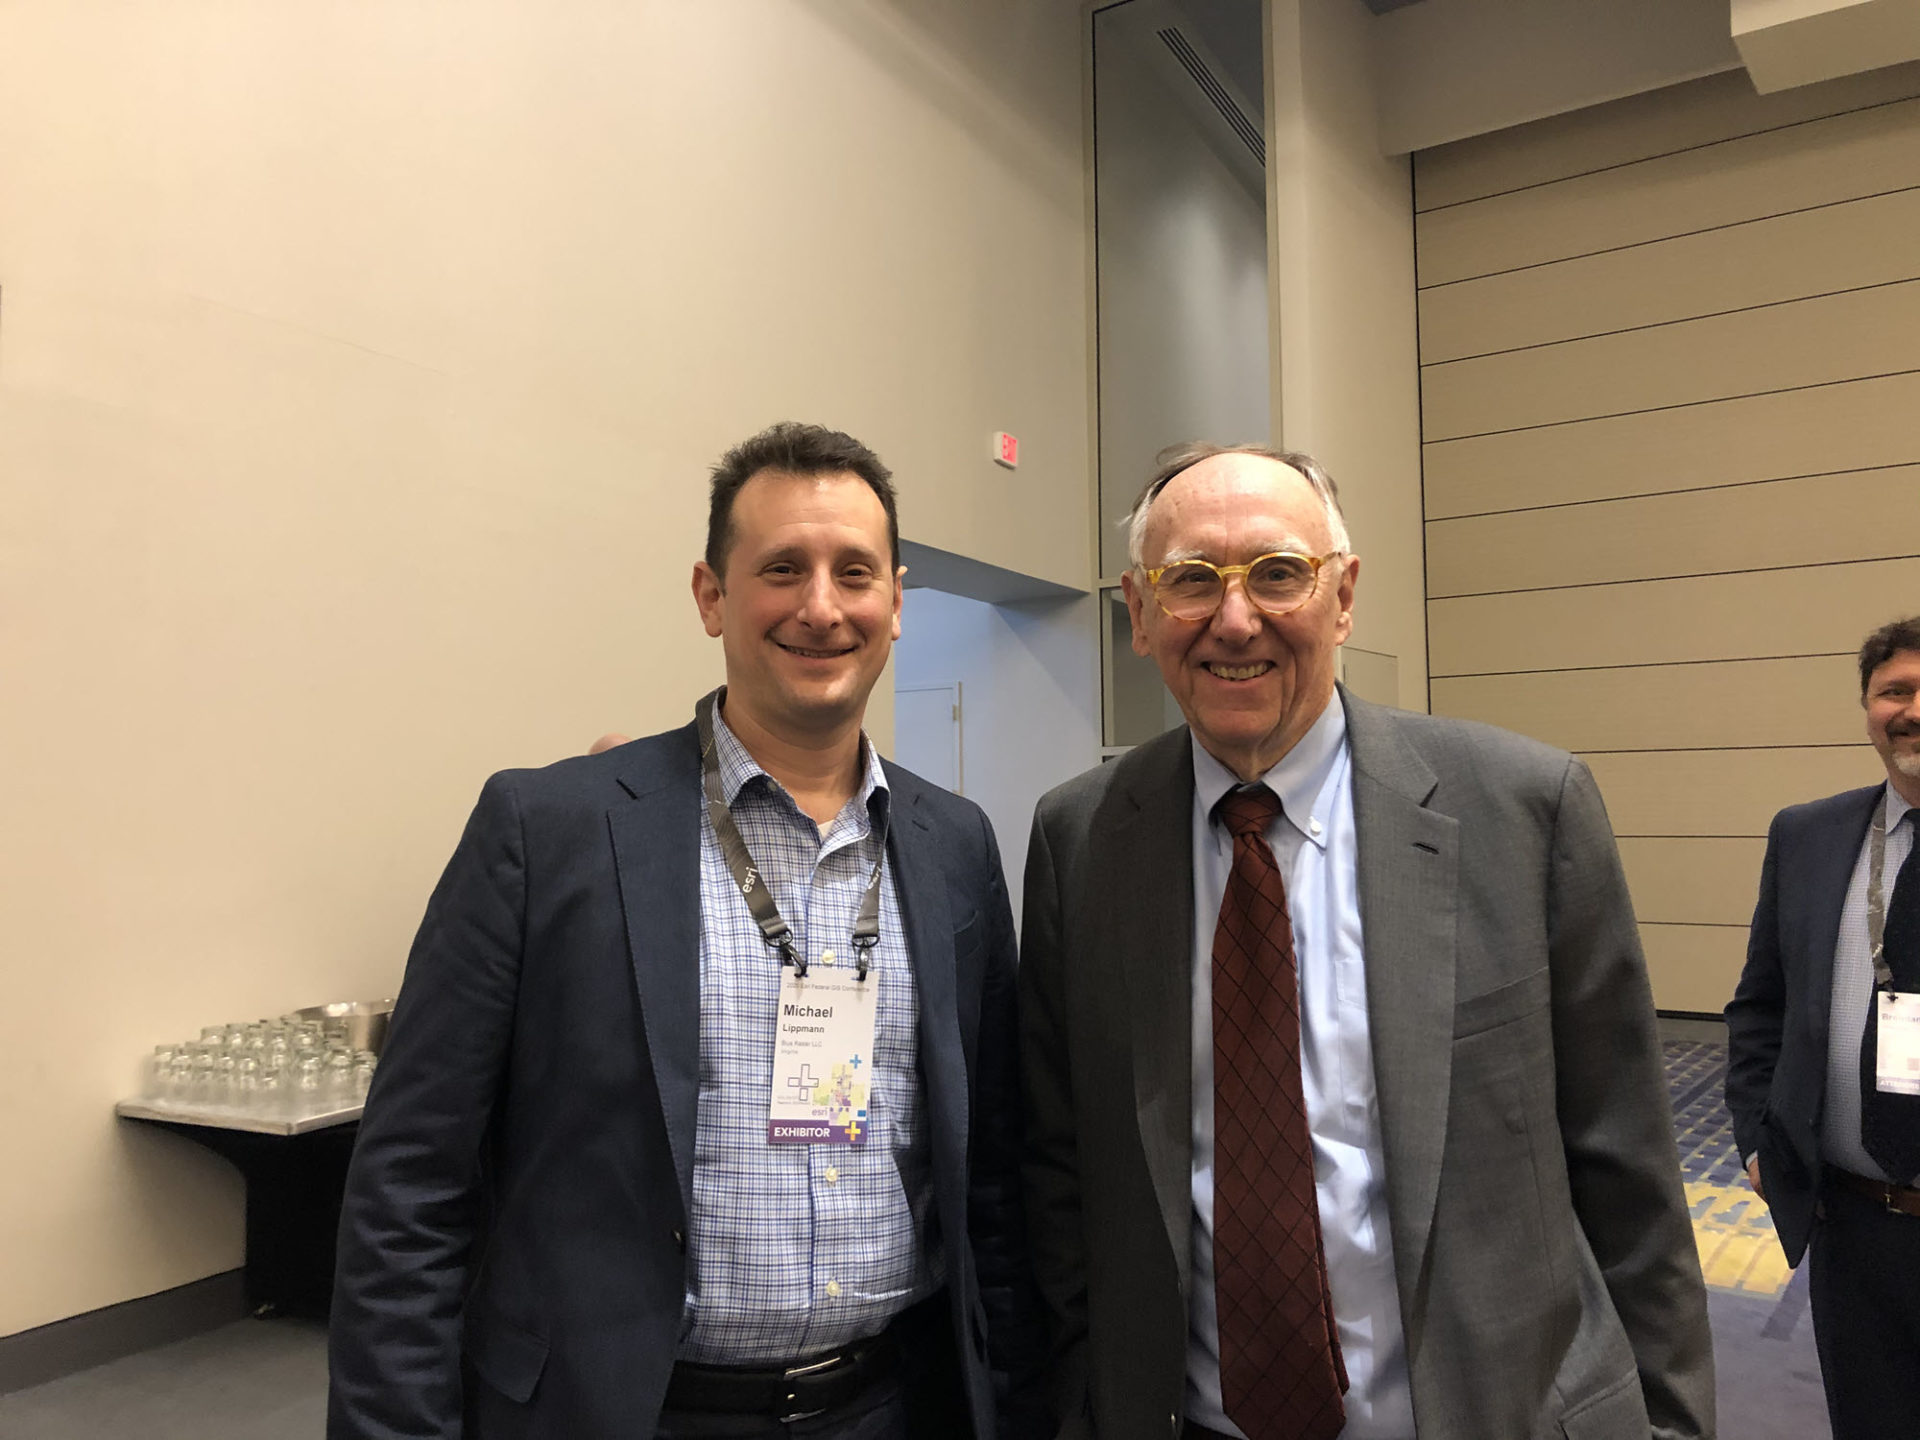 Michael Lippmann with Jack Dangermond